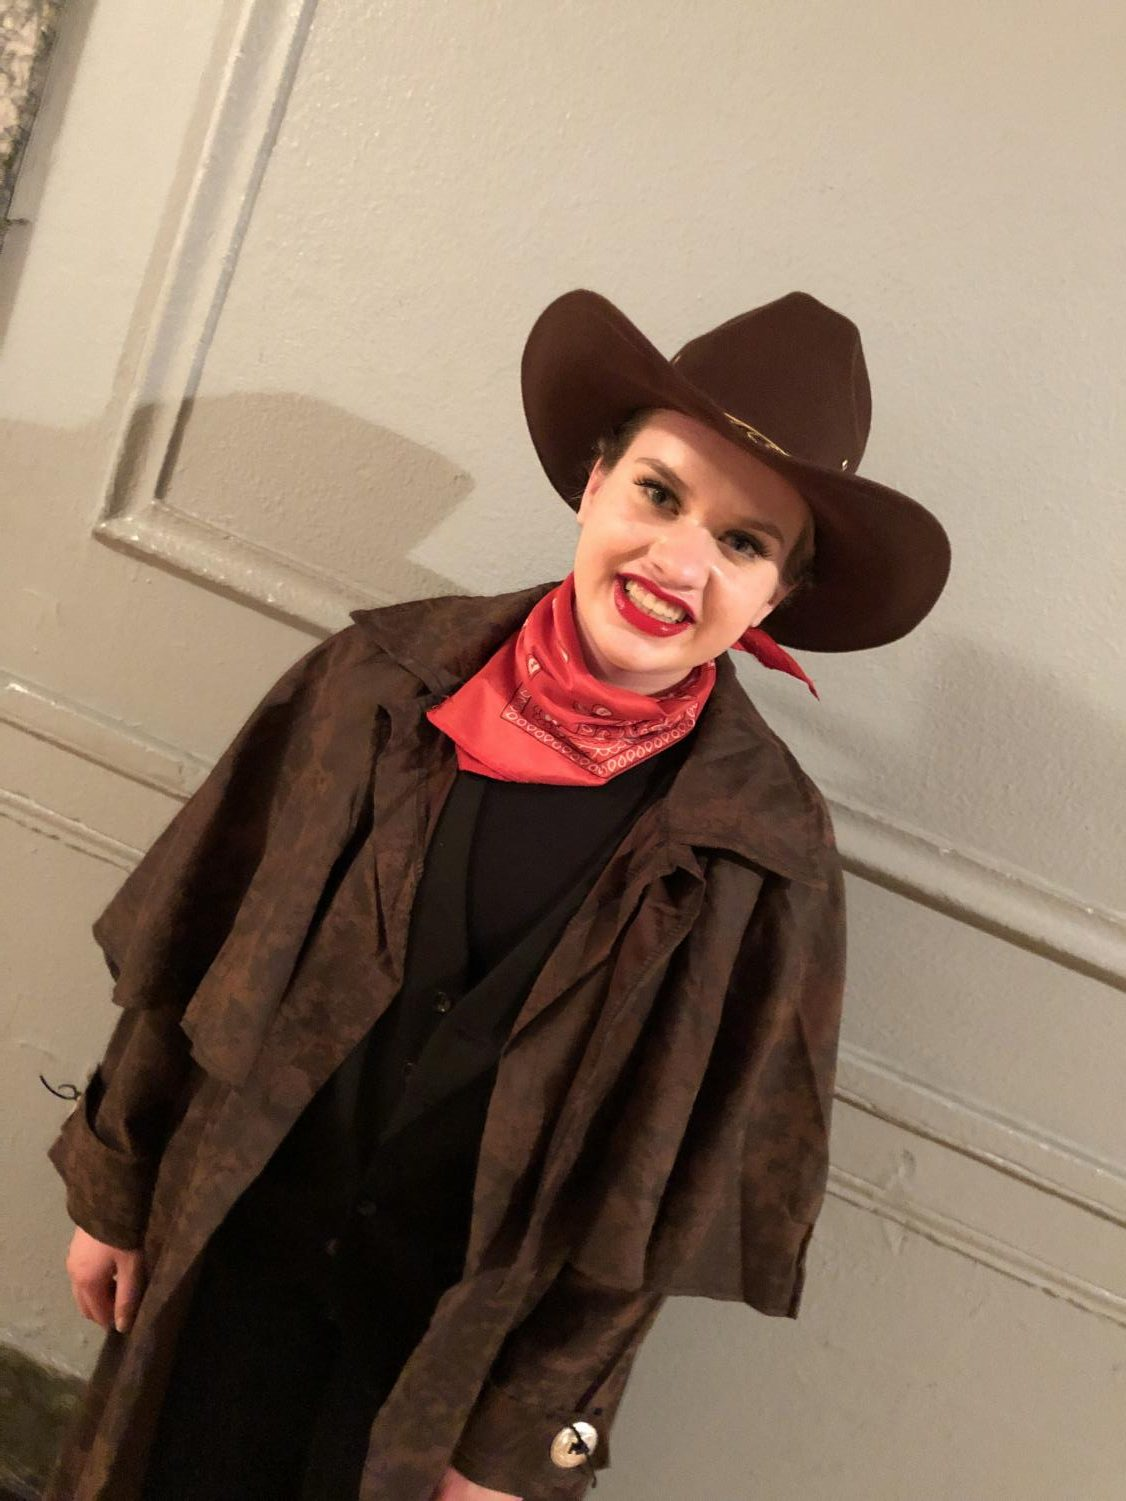 Emma Wesley in costume for Outlaws. Photo by Kristen Bailey.